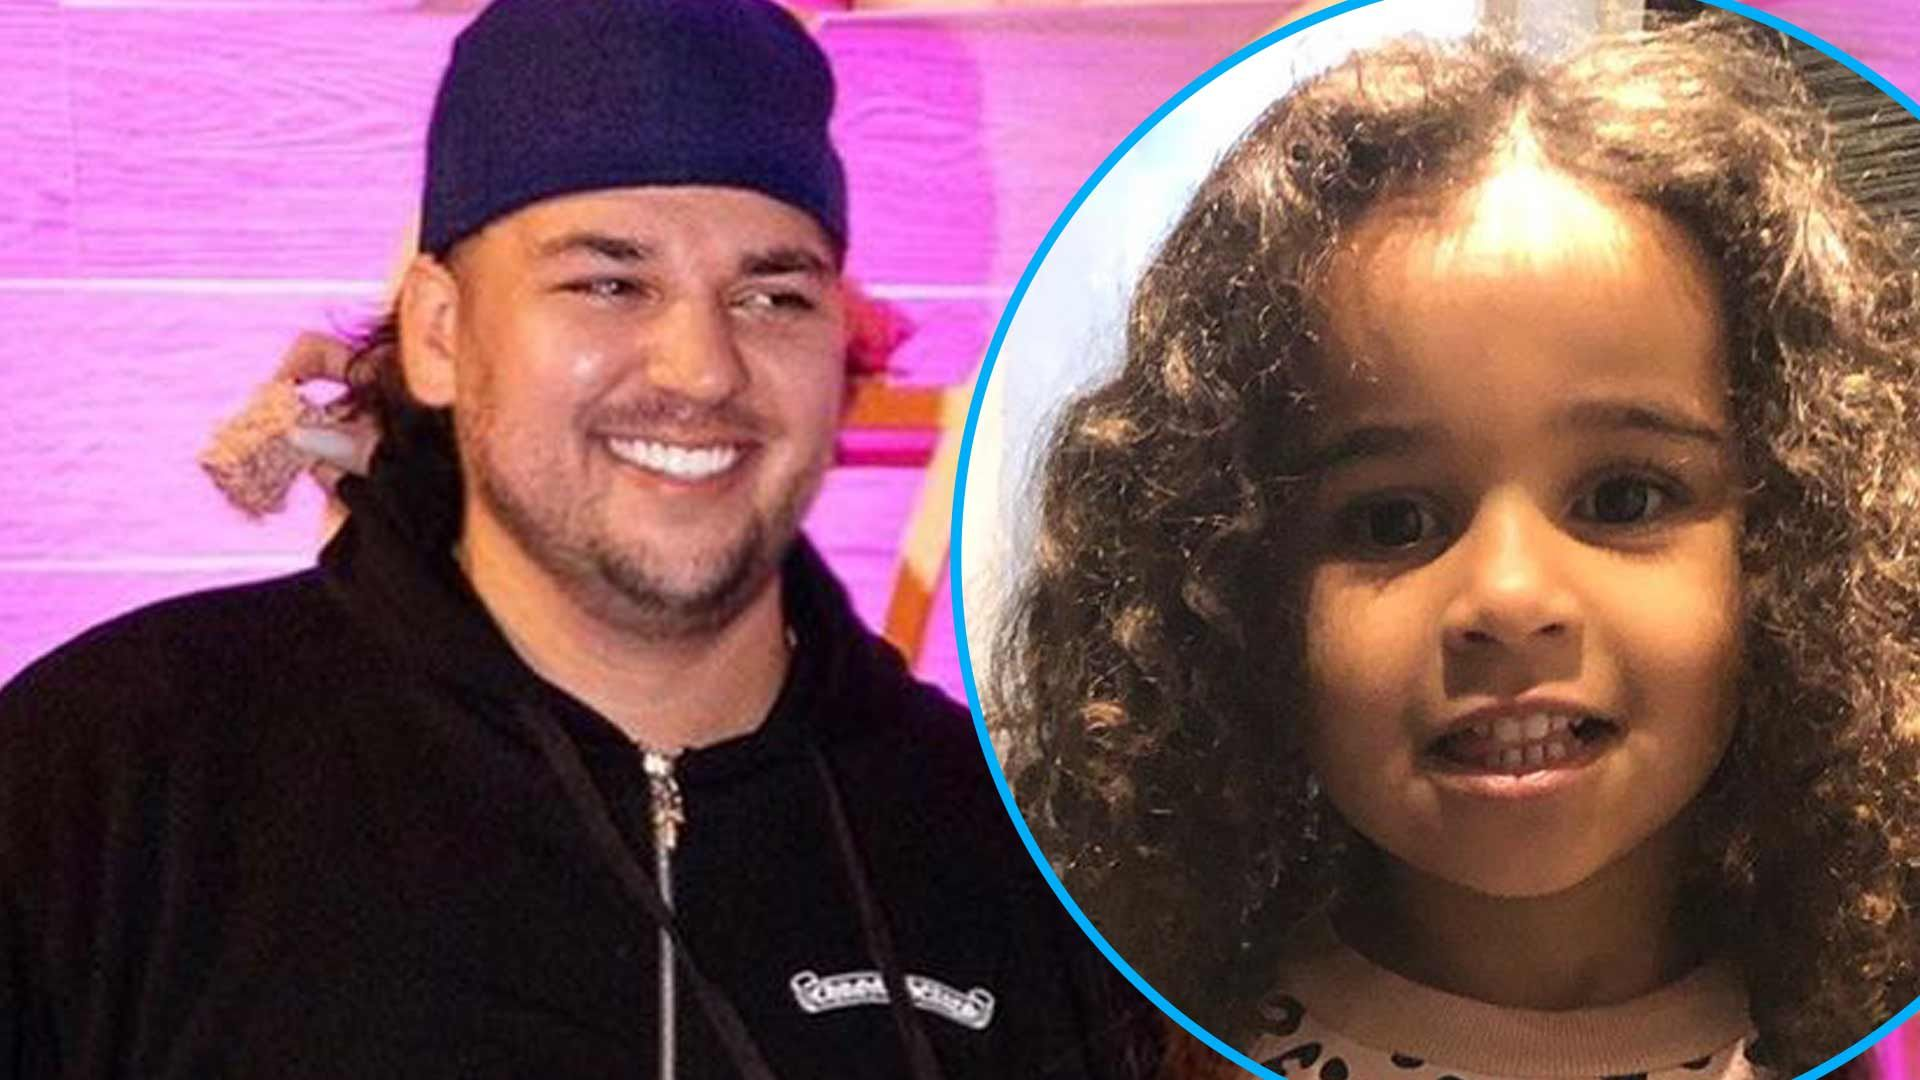 Rob Kardashian Is Celebrating The Birthday Of His And Blac Chyna's Baby Girl, Dream Kardashian